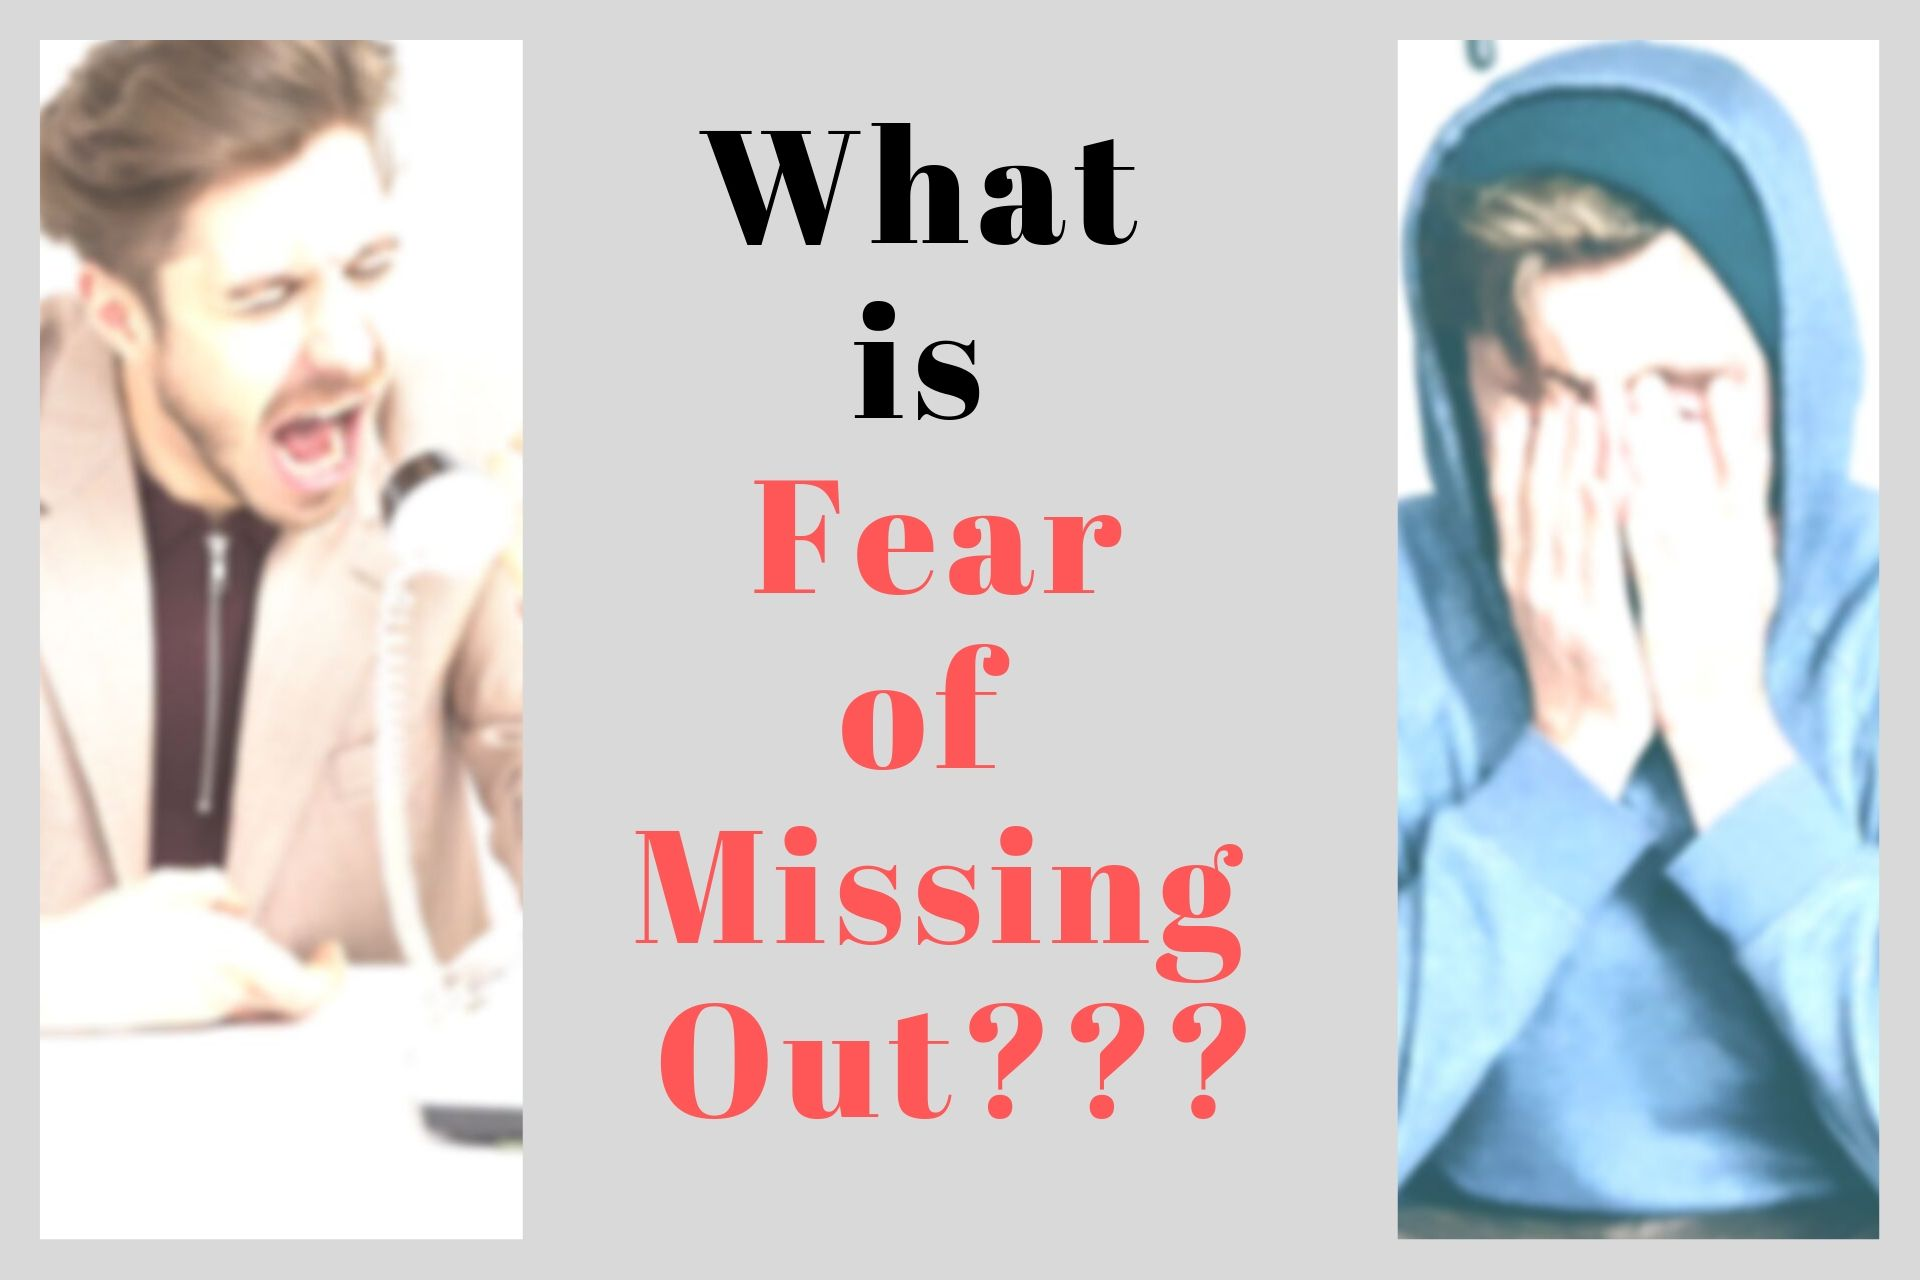 What is the Fear of Missing Out and how you can overcome it?